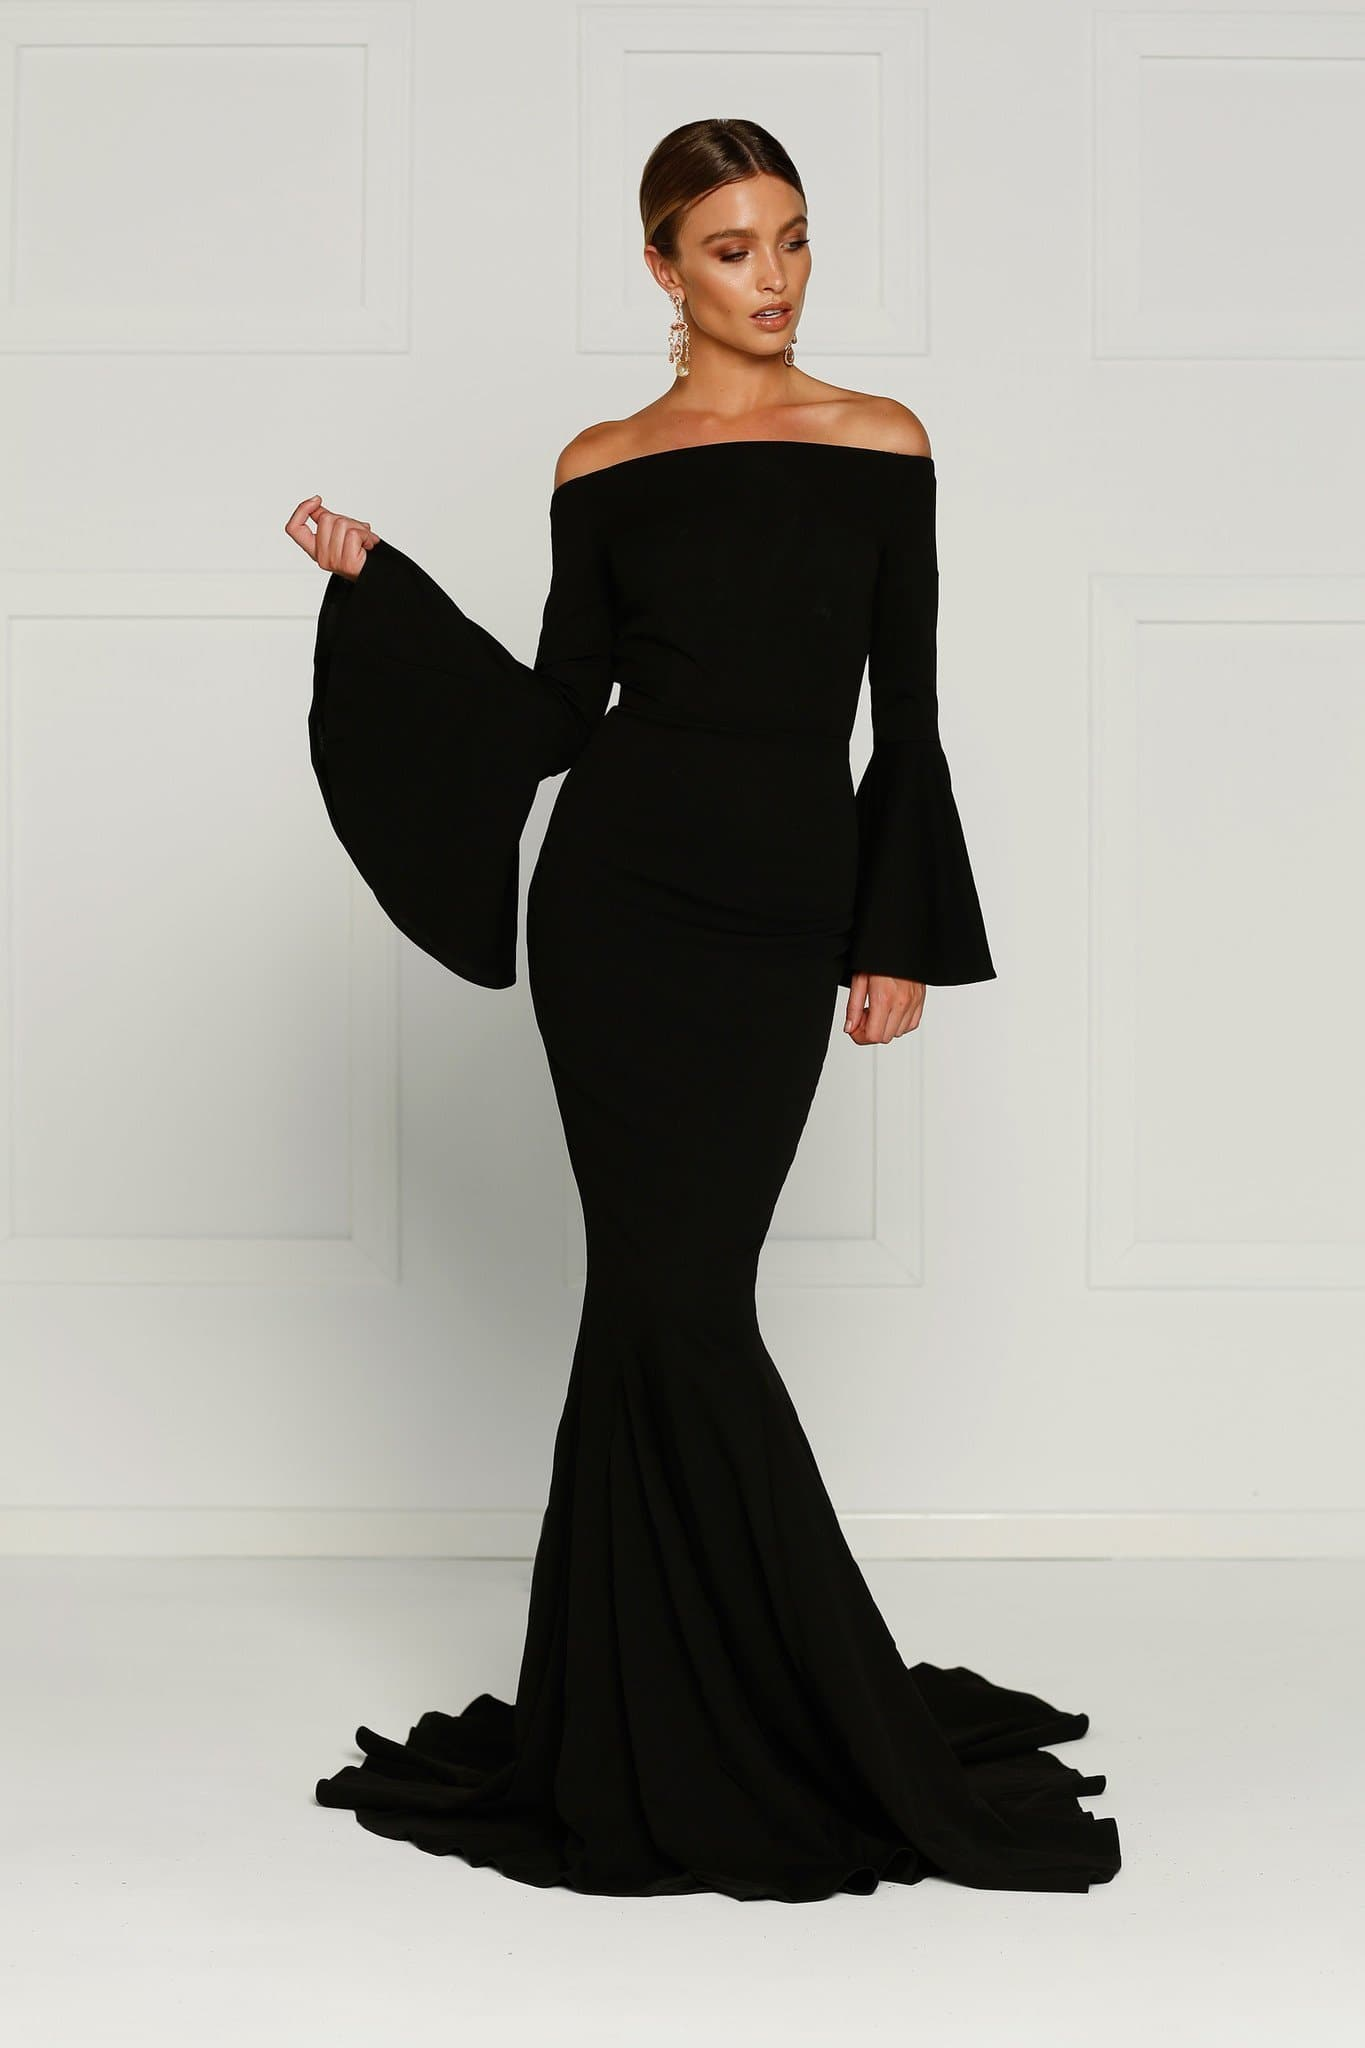 0989ff0d8d1 Amore - Black Off Shoulder Gown with Long Flare Sleeves – A N Luxe Label